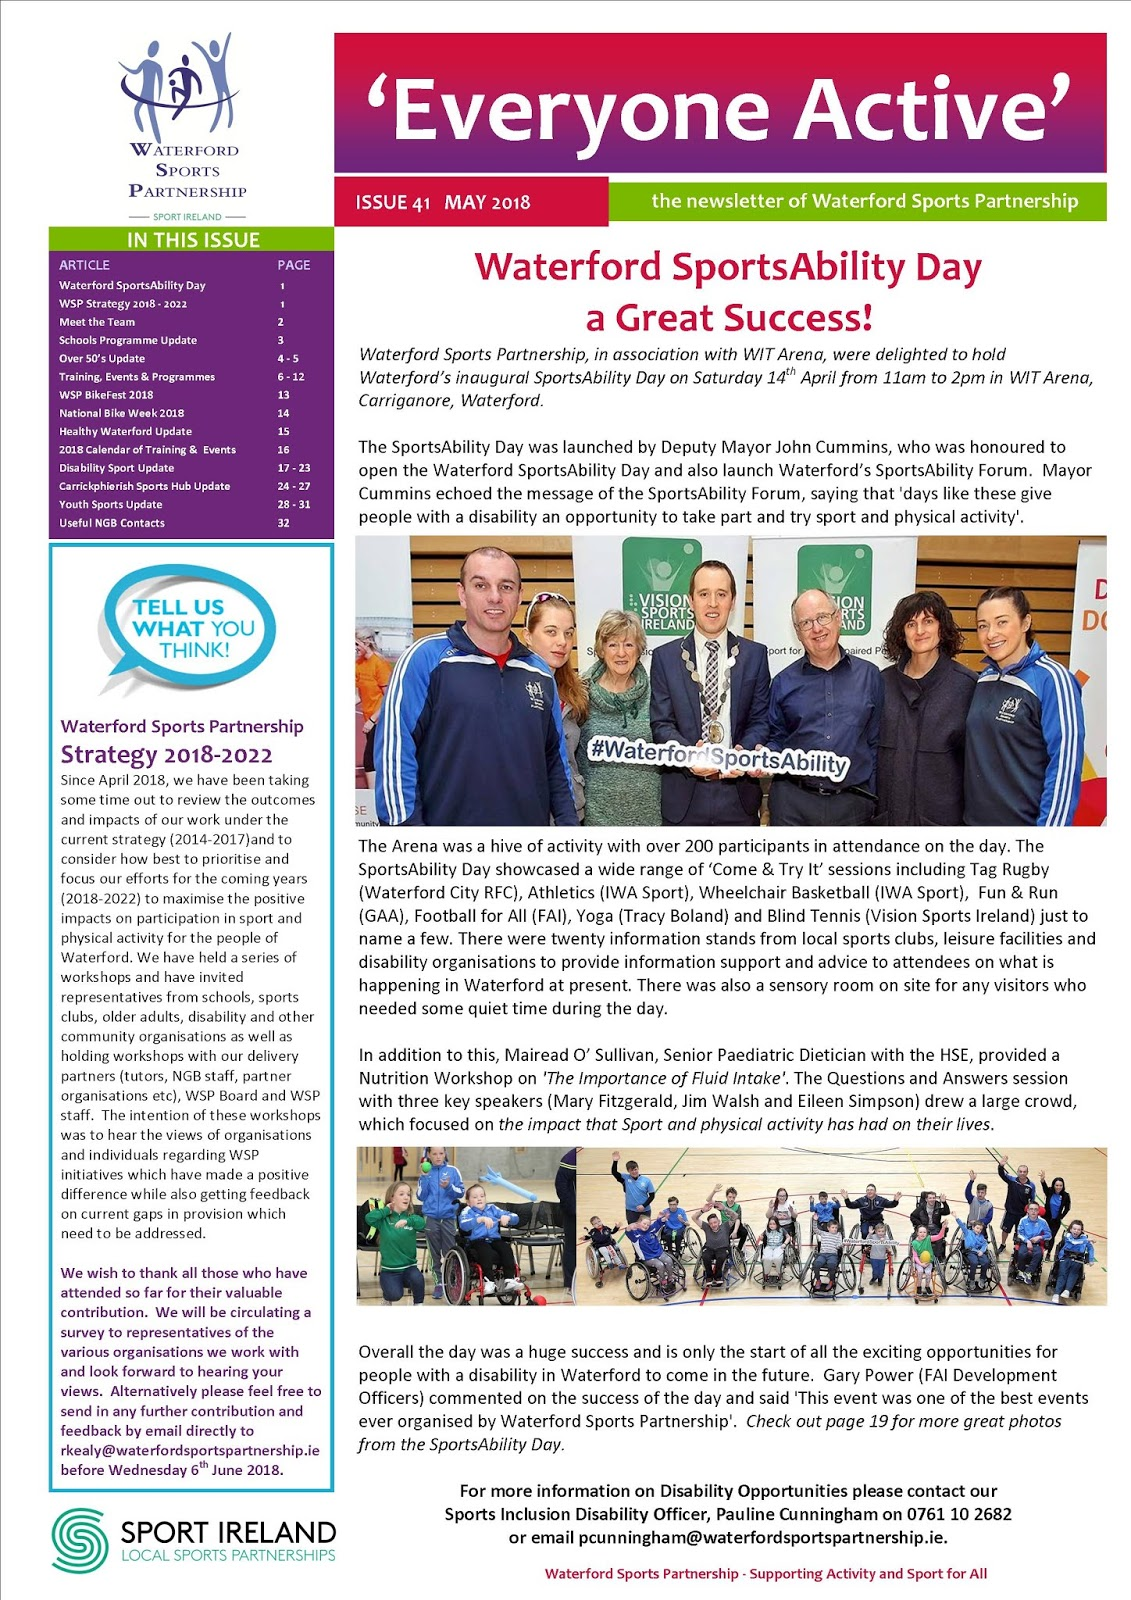 Check out the latest edition of our Newsletter 'Everyone